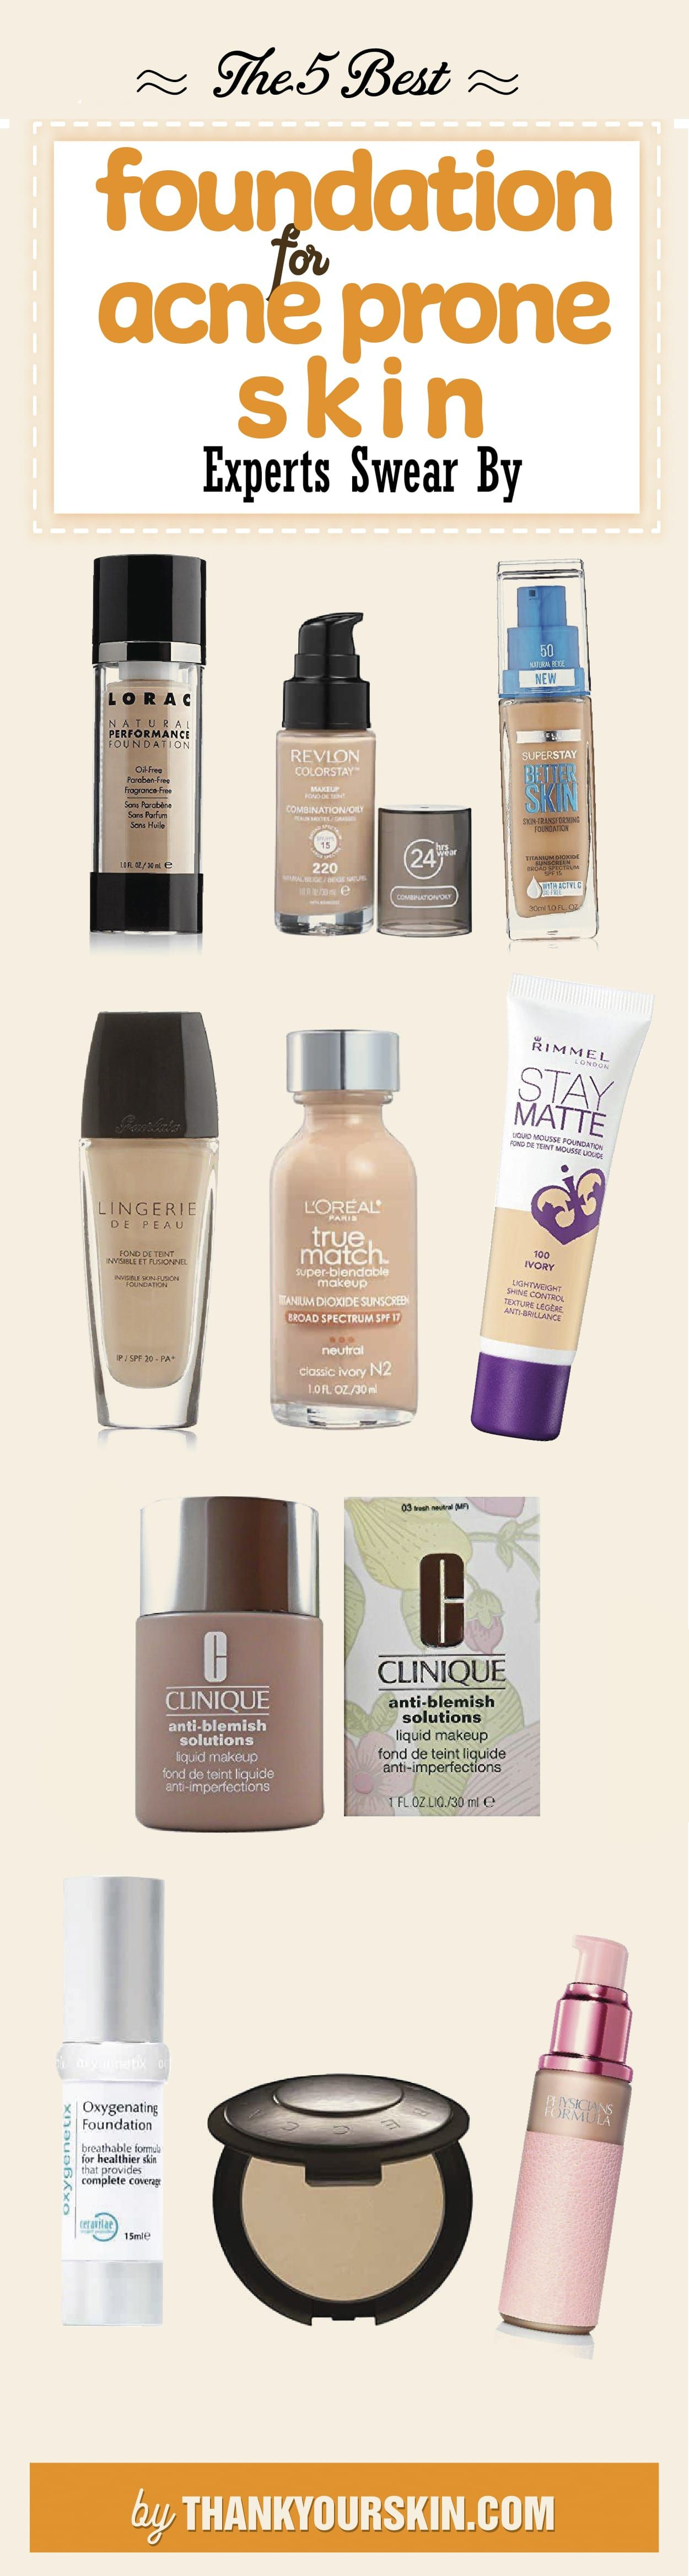 Best Foundation For Acne Prone Skin How To Apply Tips And Tricks Foundation Acnepronesk Best Foundation For Acne Acne Prone Skin Foundation For Oily Skin